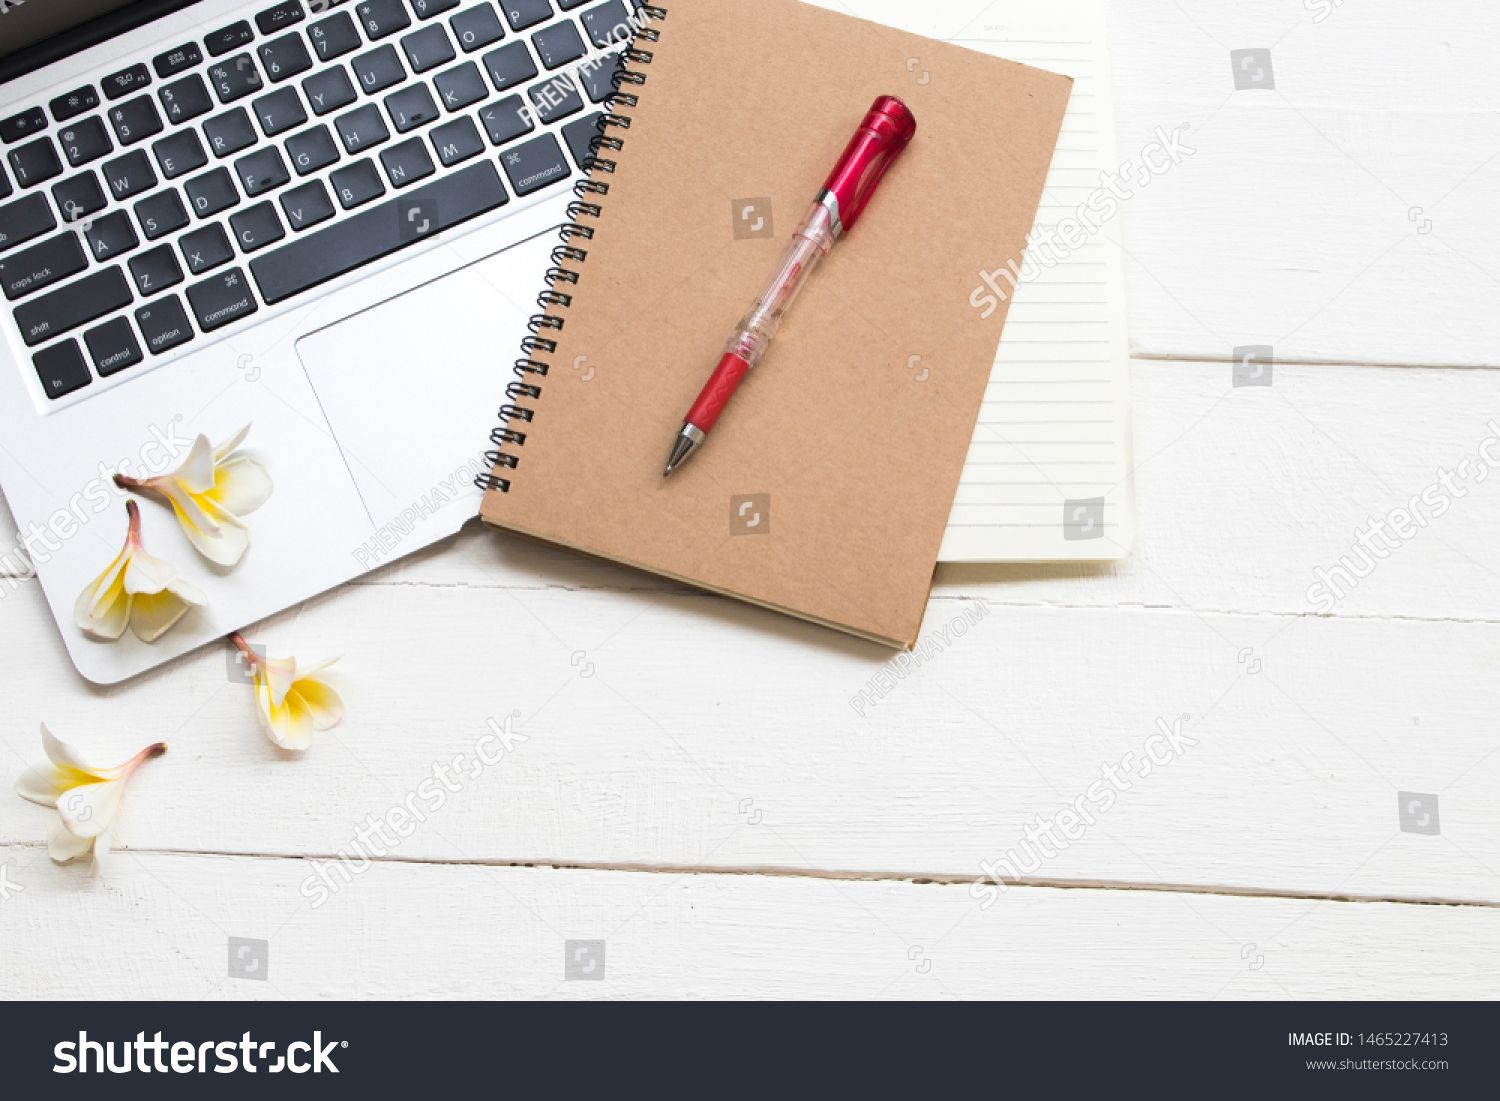 computer and notebook planner for business work arrangement flat lay style on background white wooden #Sponsored , #affiliate, #business#work#arrangement#computer